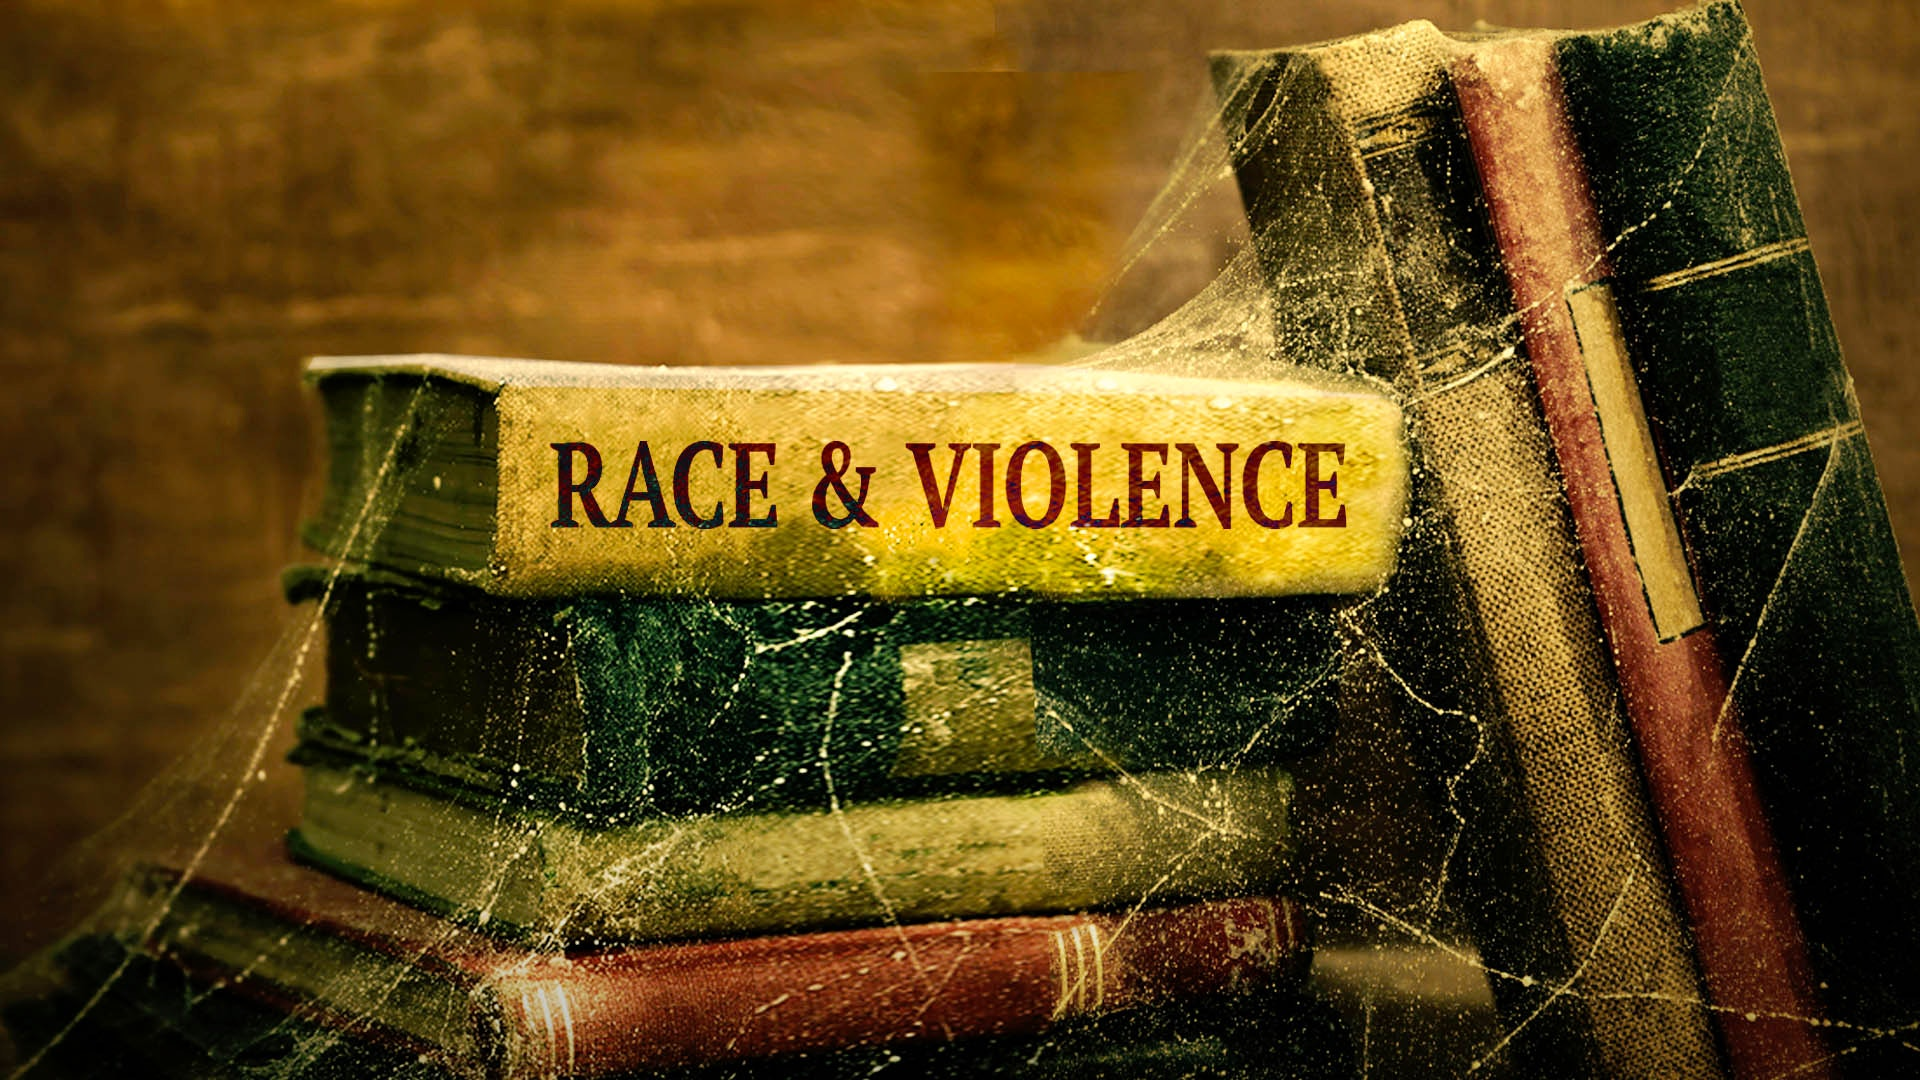 Ep. 686 - Telling The Forbidden Truth About Race And Violence